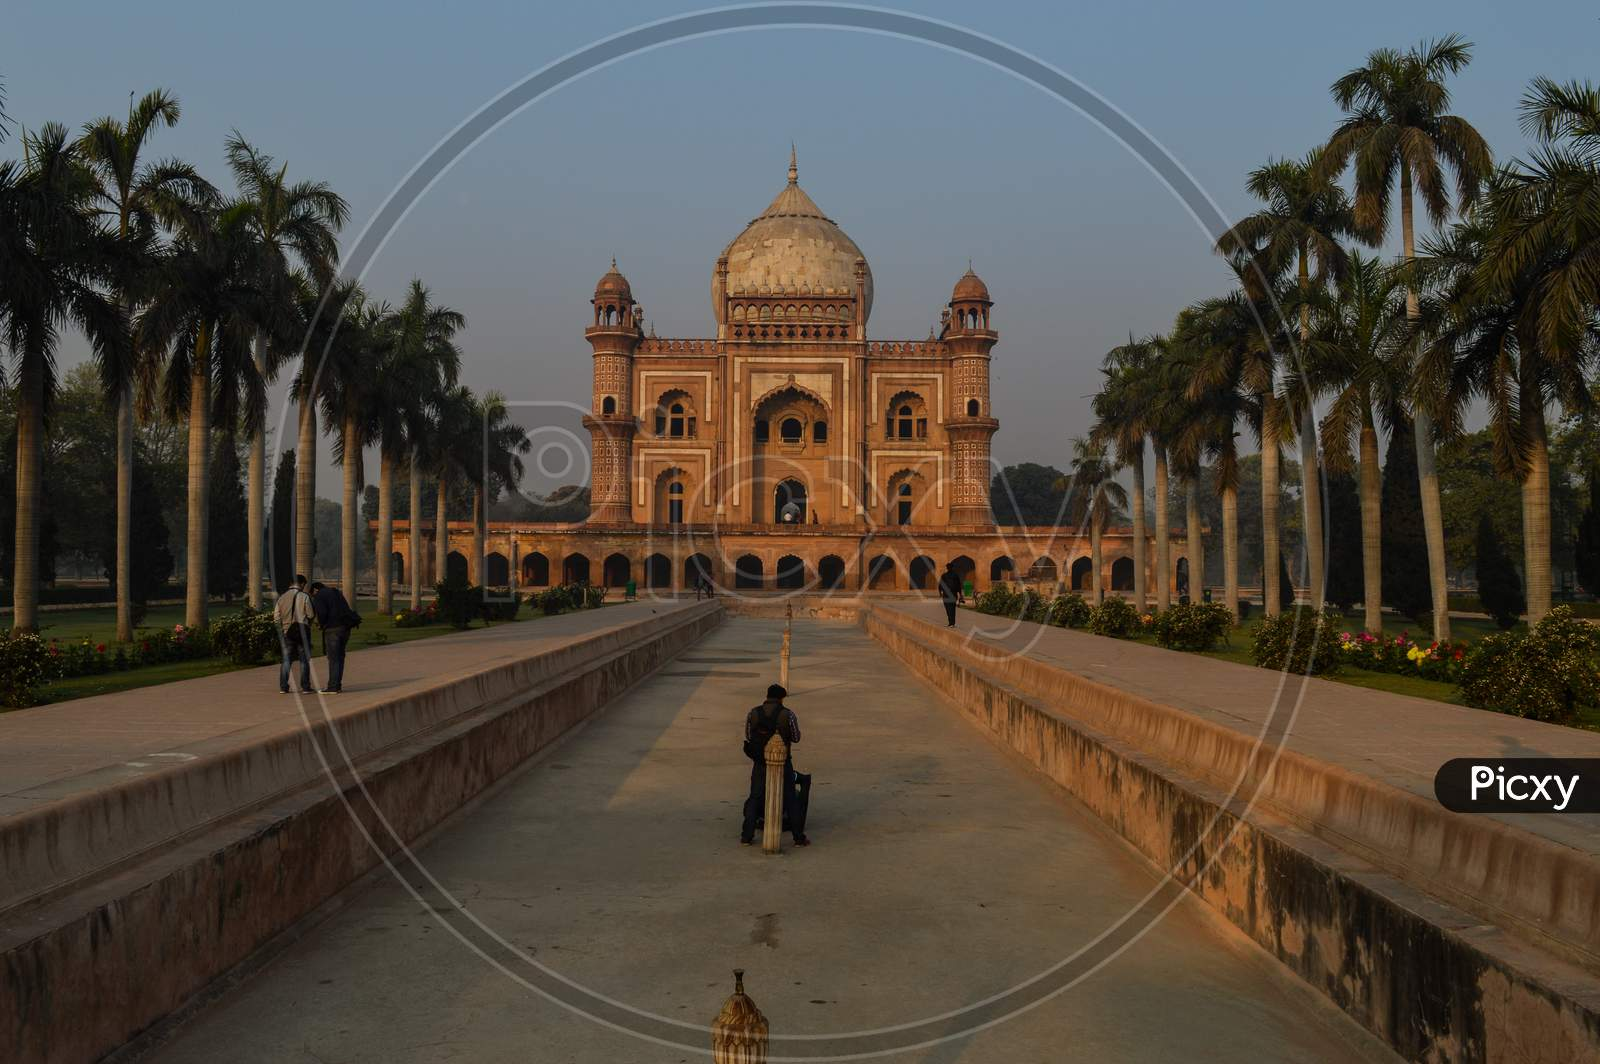 A Bunch Of Photography Students Standing And Taking Picture In-Front Of Safdarjung Tomb Memorial At Winter Morning.